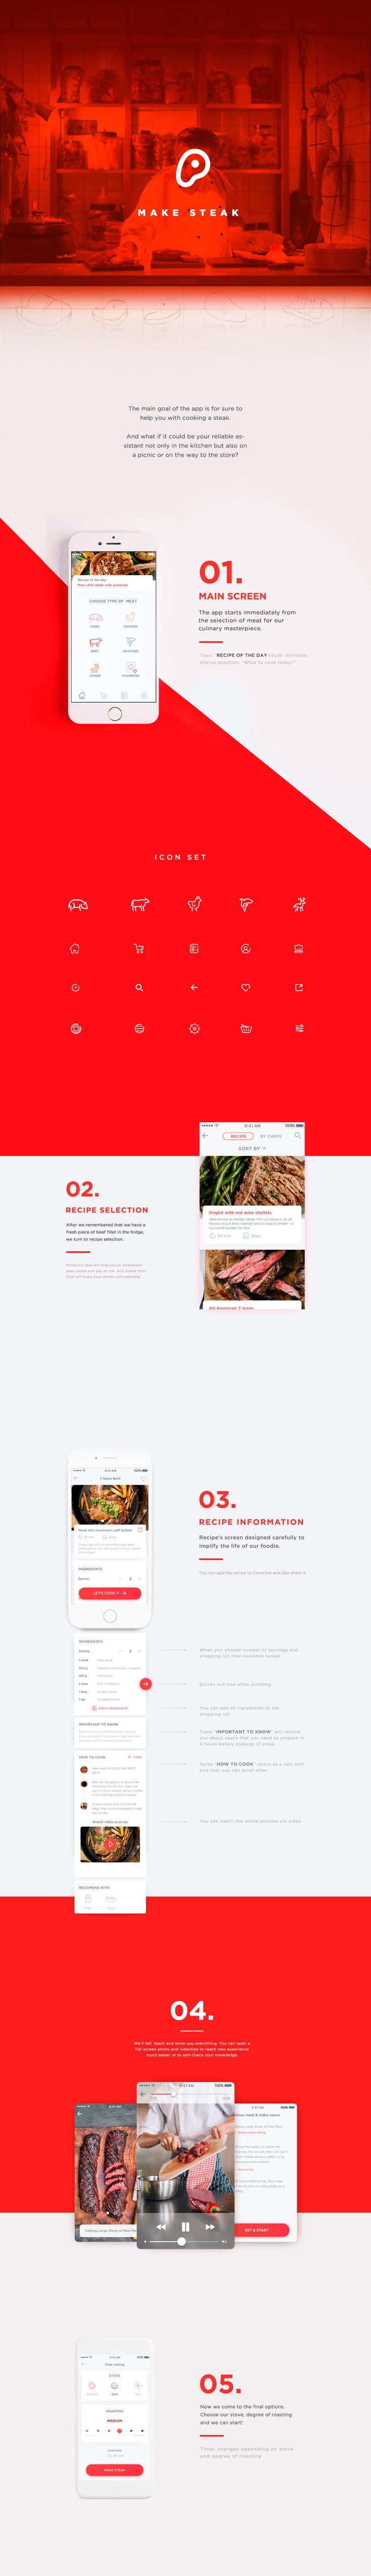 Make Steak Application on Behance